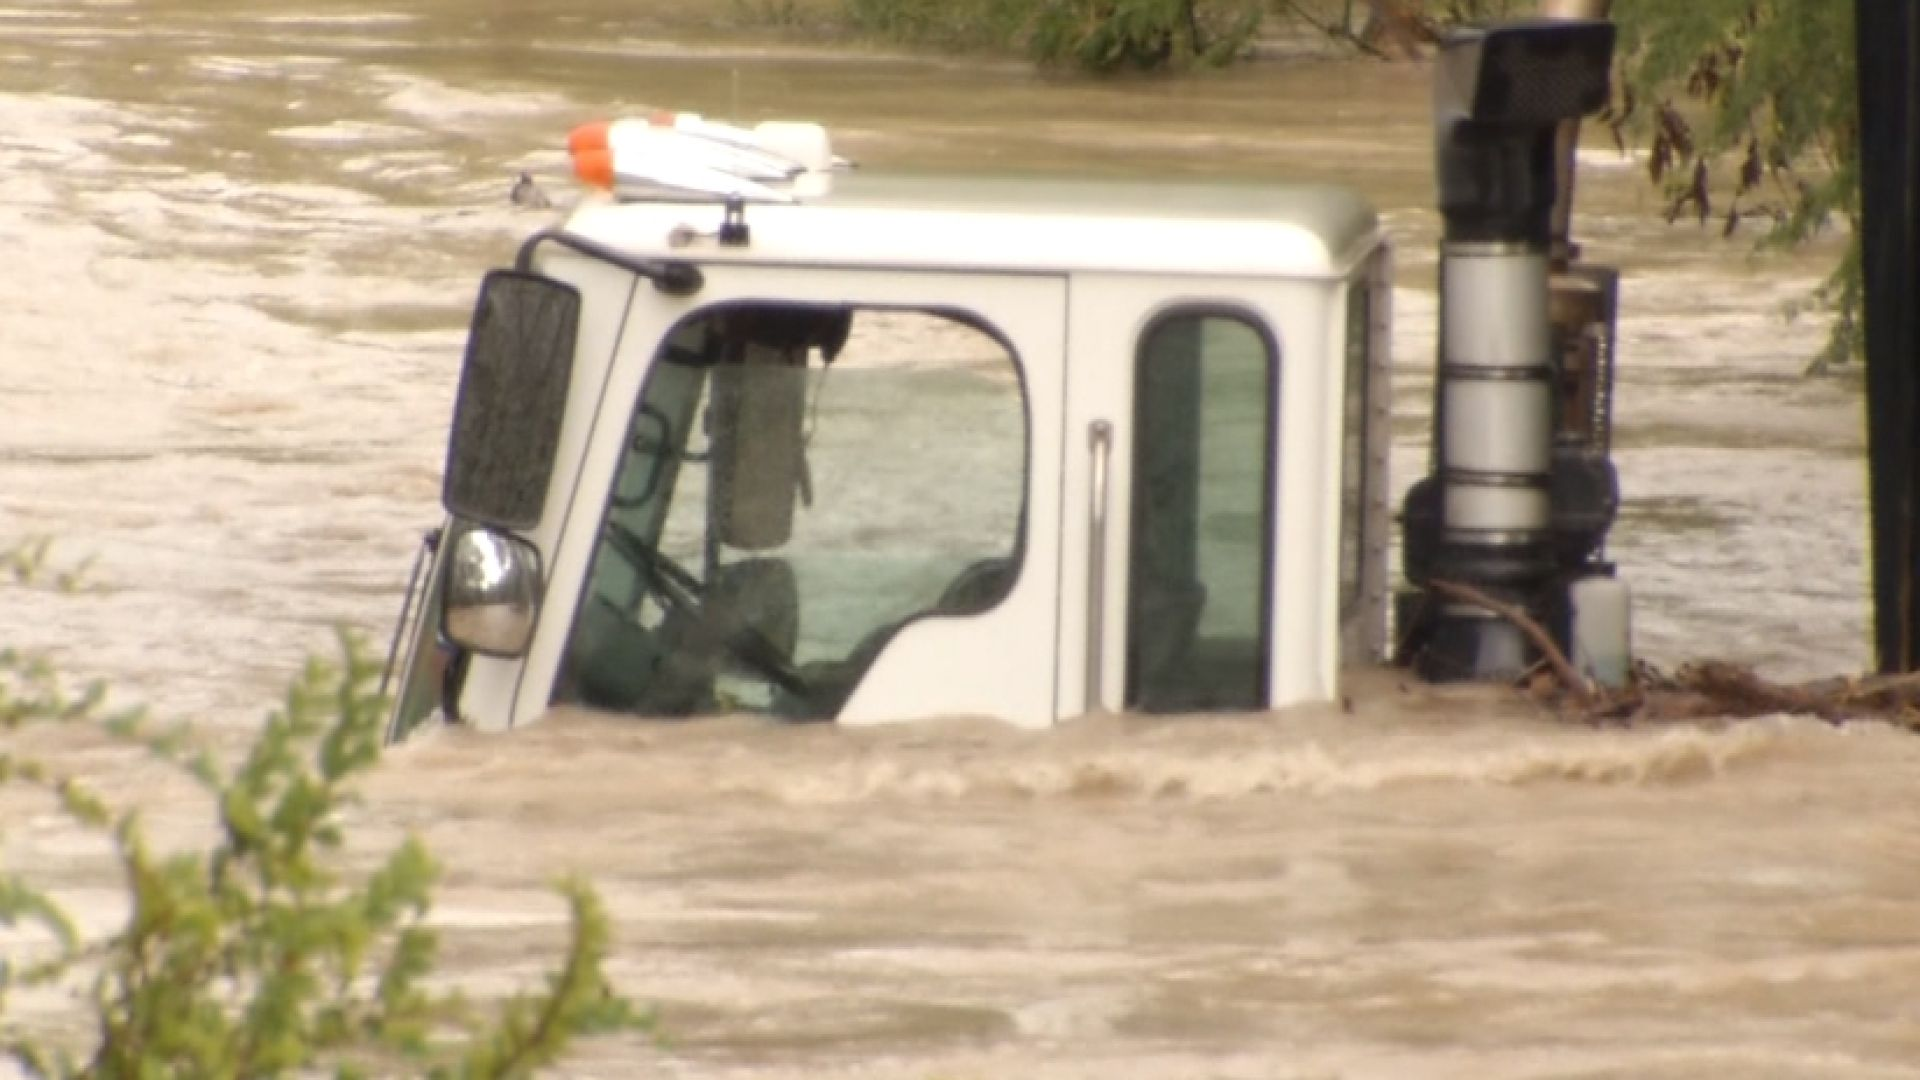 Dozens of drivers were rescued Monday when their vehicles were overtaken by flash flood waters.